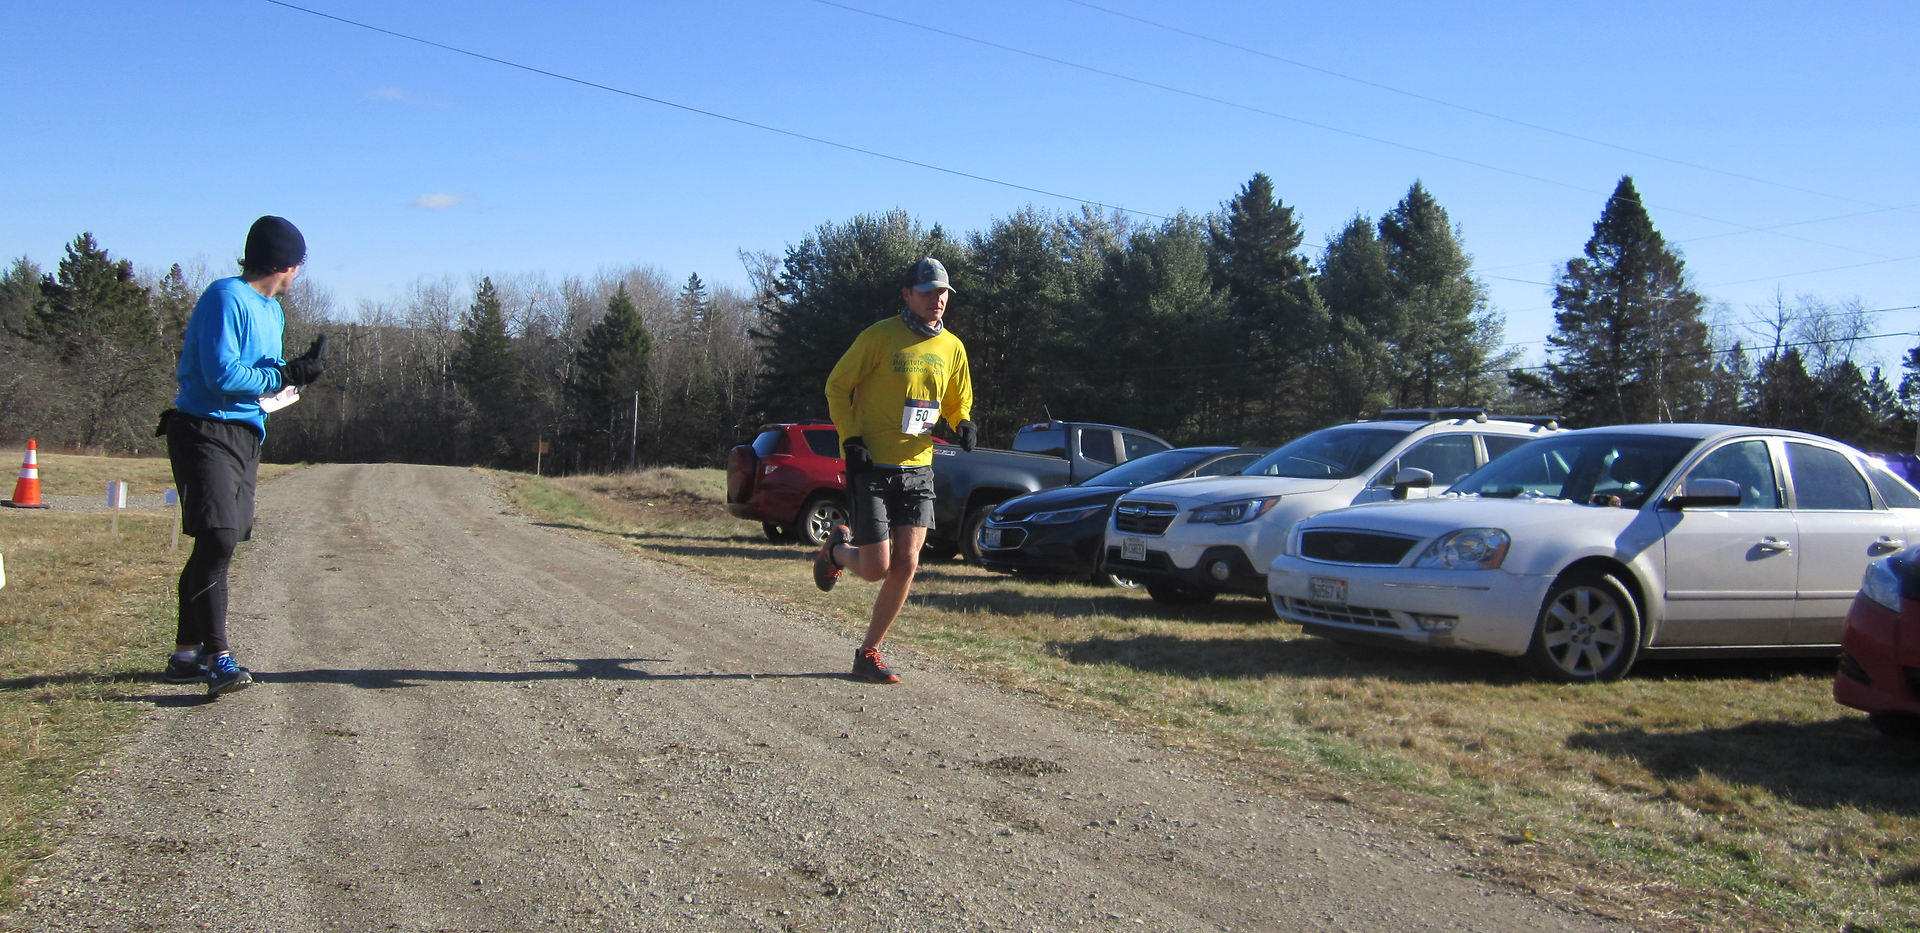 Mile 10, this runner just has 3.1 to go!